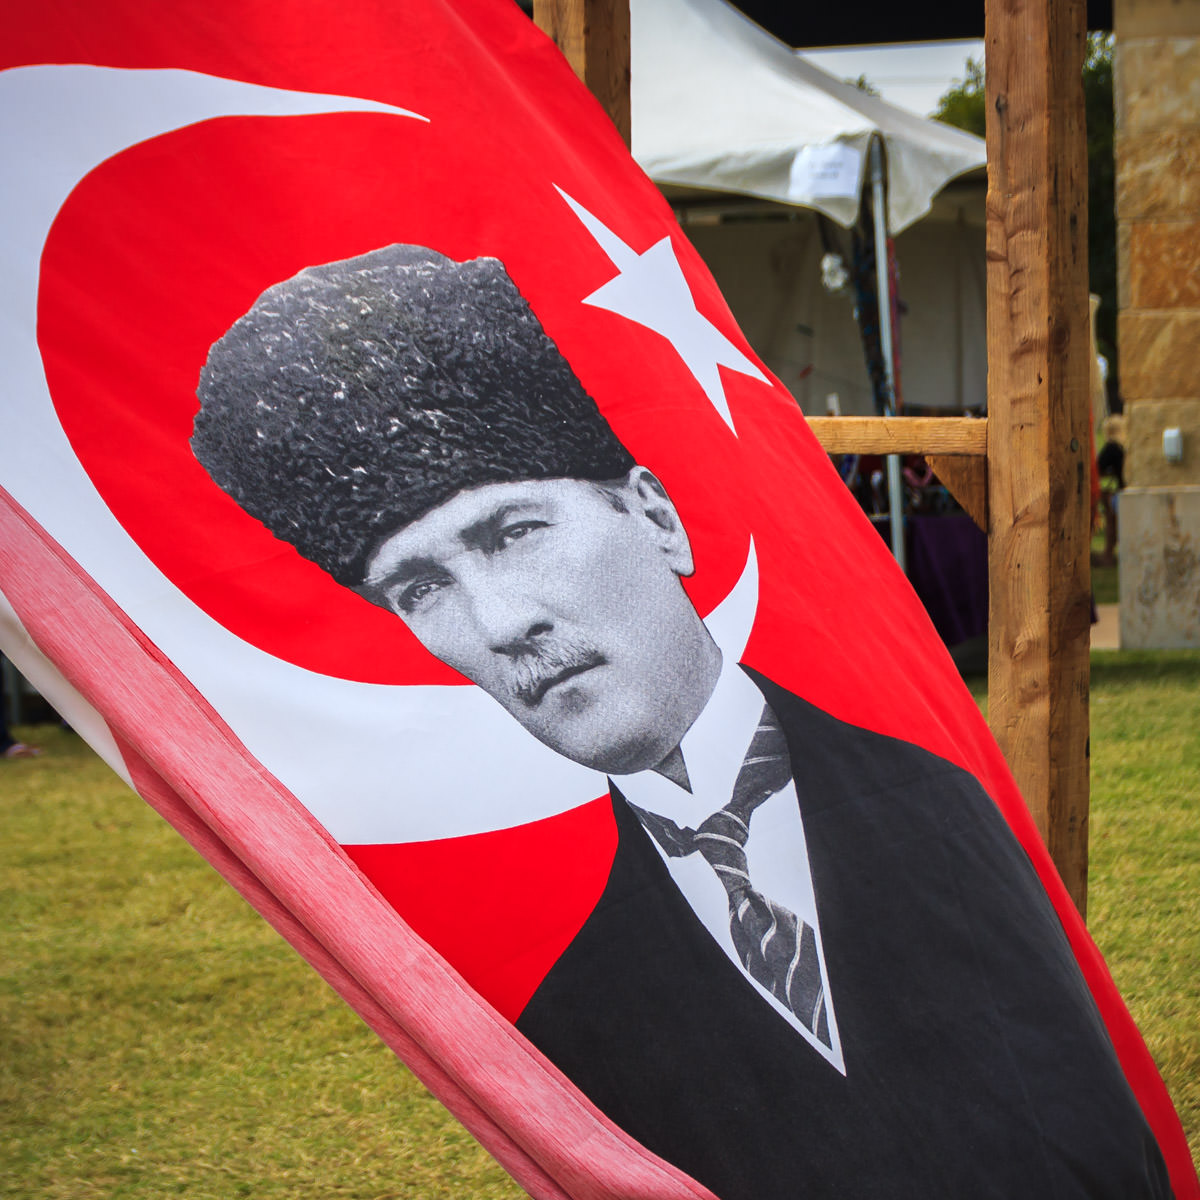 A banner depicting Mustafa Kemal Atatürk—first President of Turkey—waves in the wind at Addison WorldFest at Addison Circle Park, Addison, Texas.